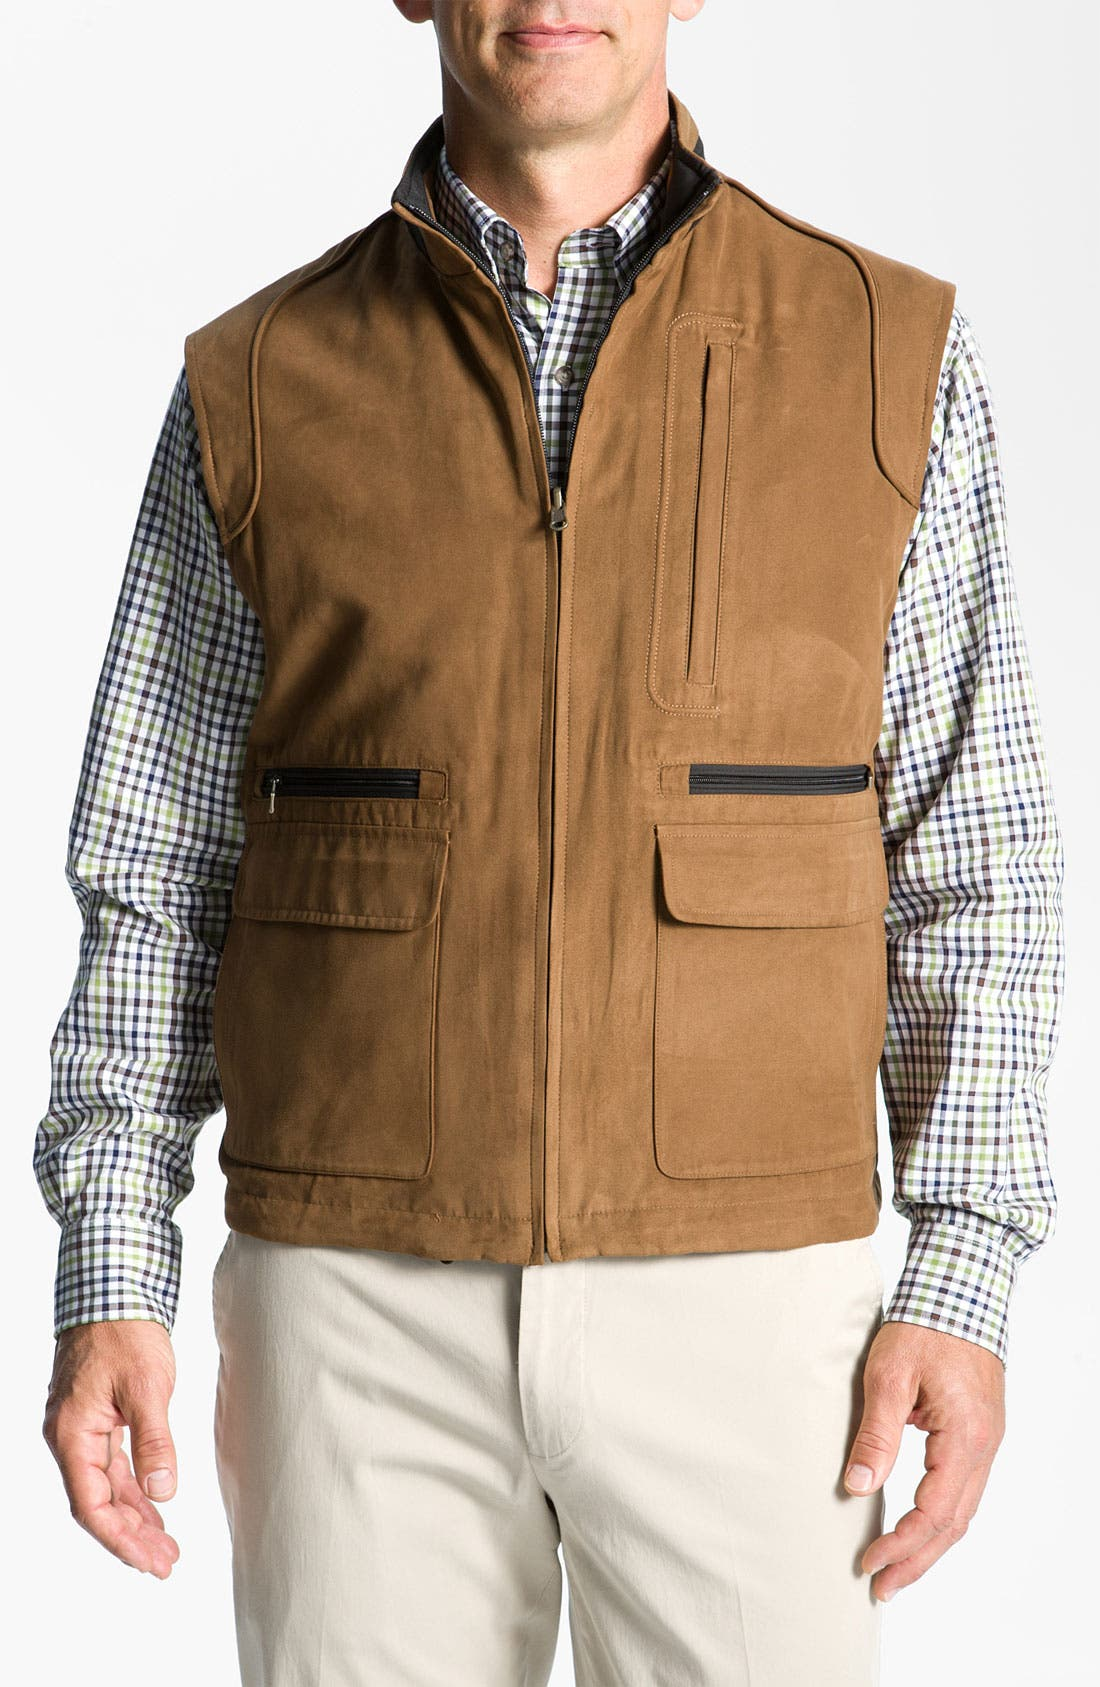 Alternate Image 1 Selected - Cutter & Buck 'Preston' Reversible Vest (Big & Tall) (Online Exclusive)